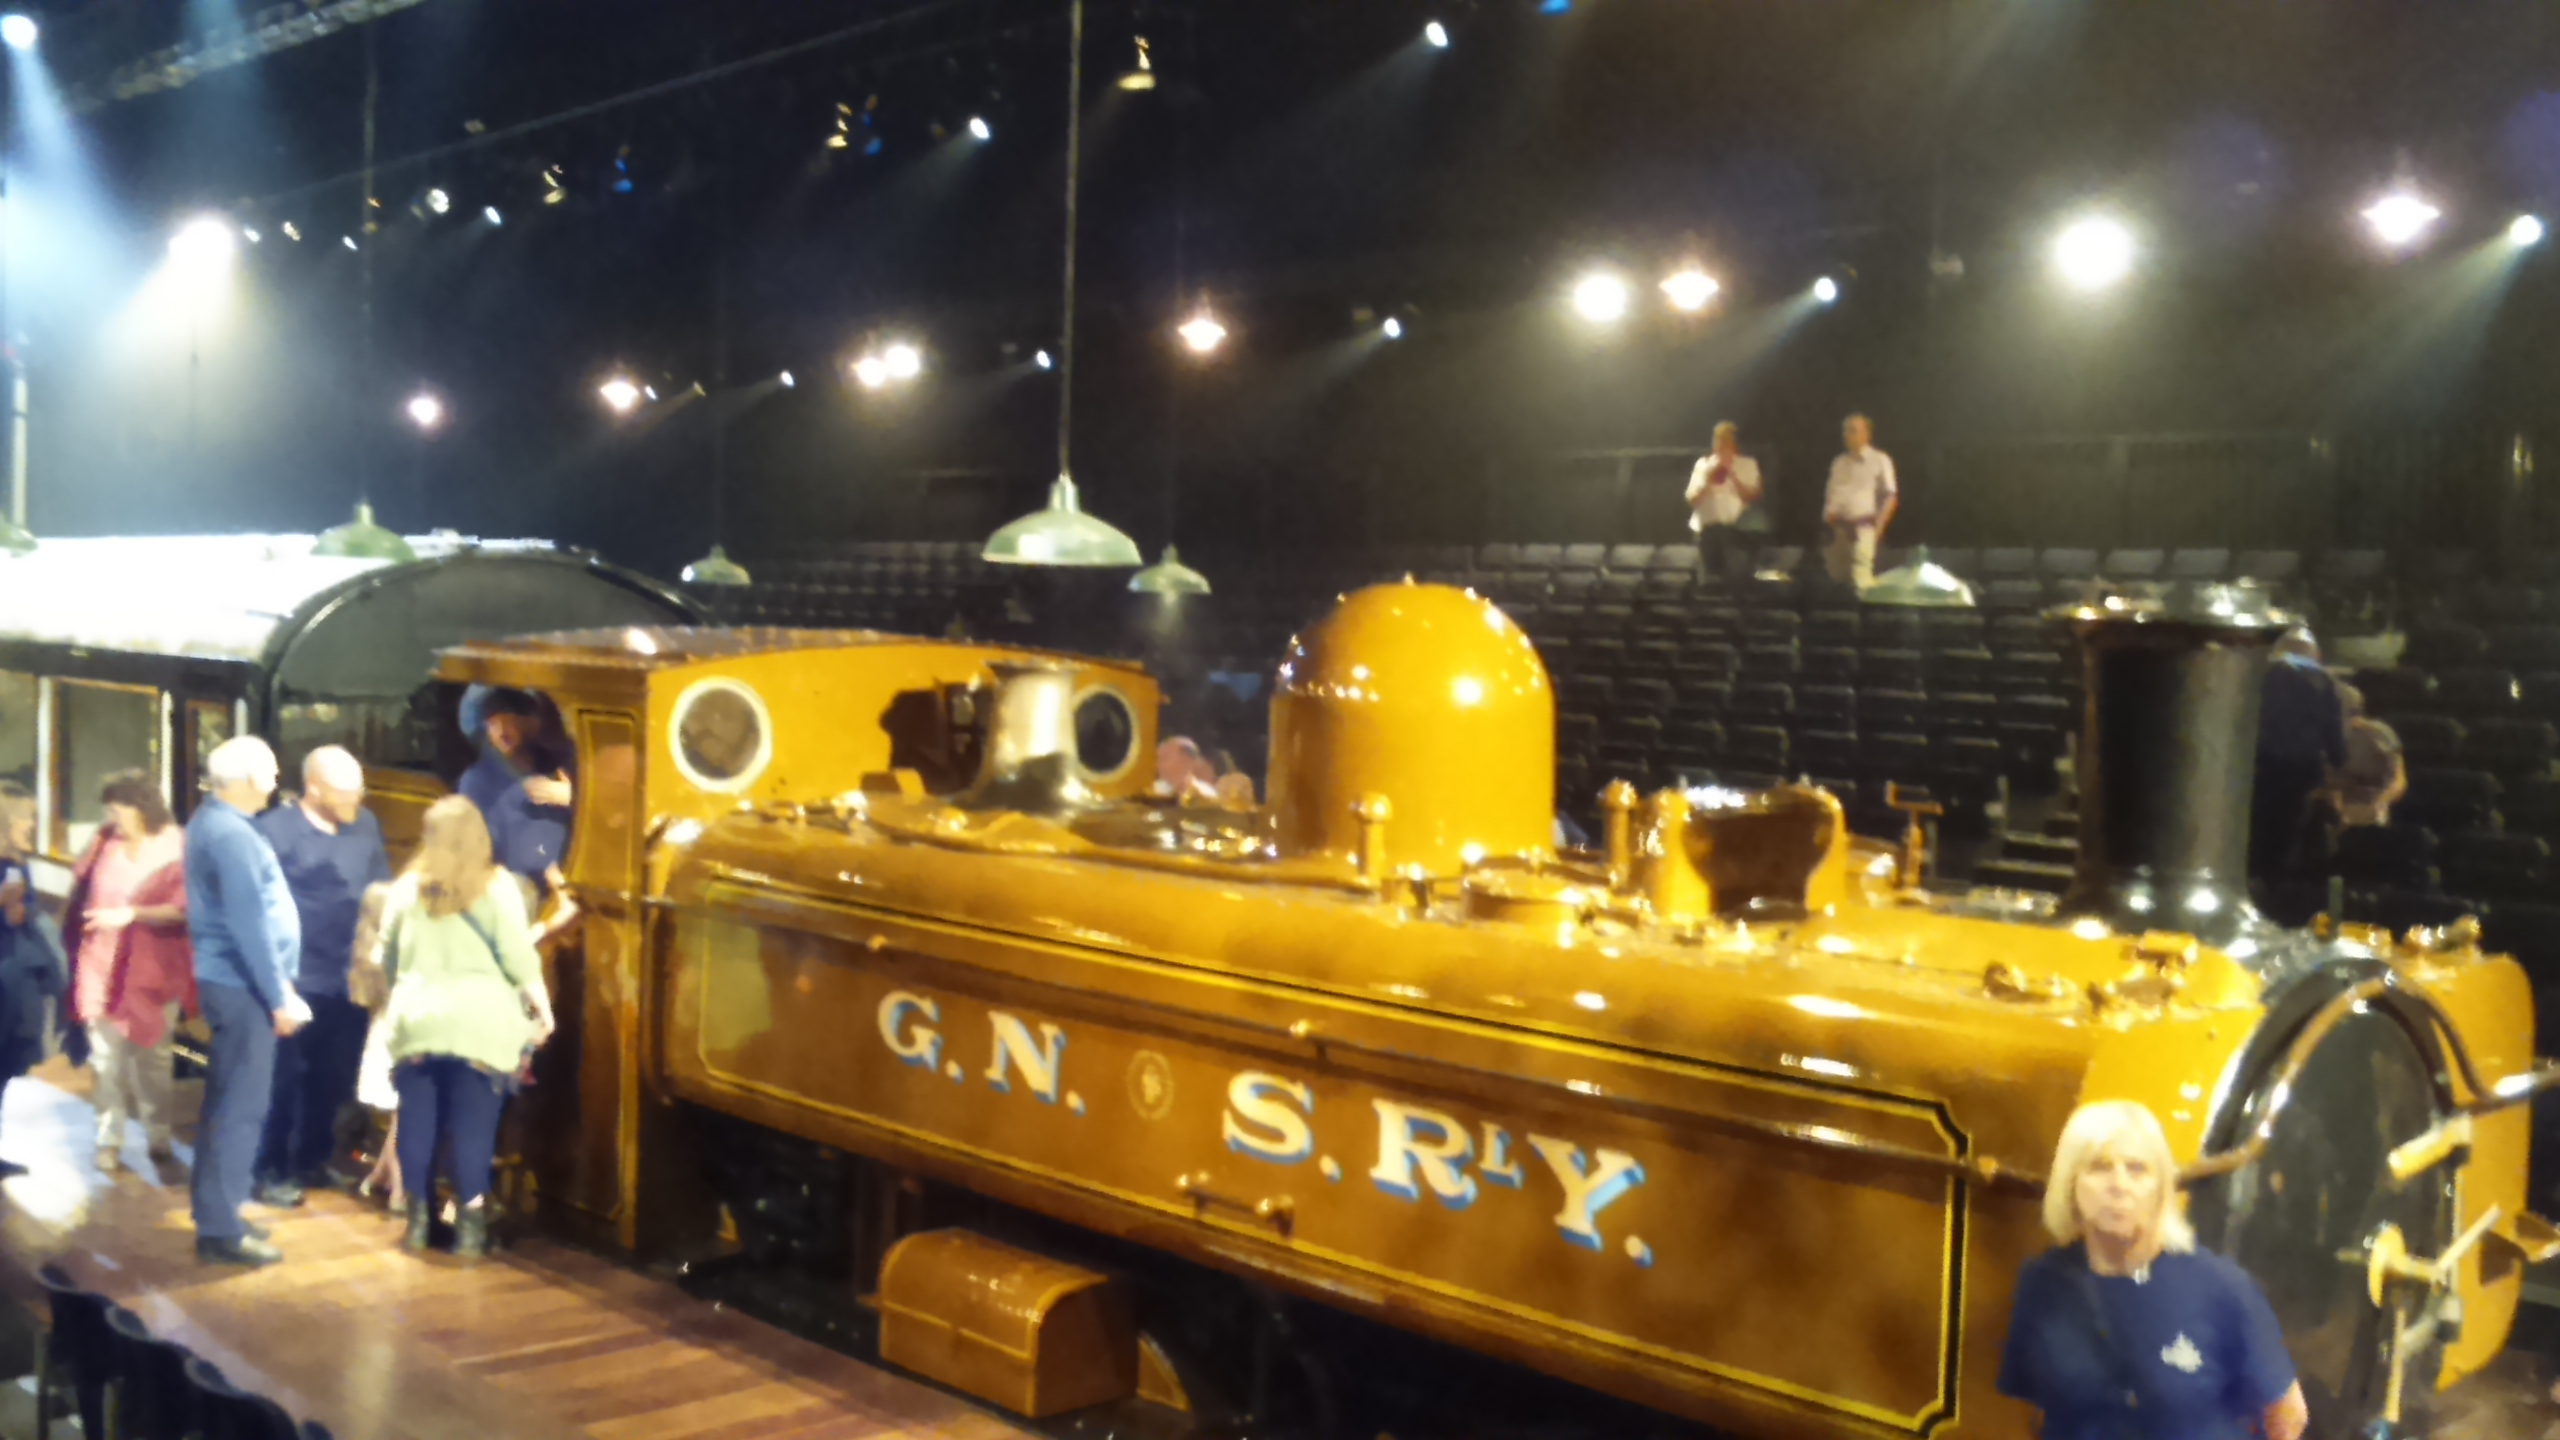 Review: The Railway Children, York Theatre Royal